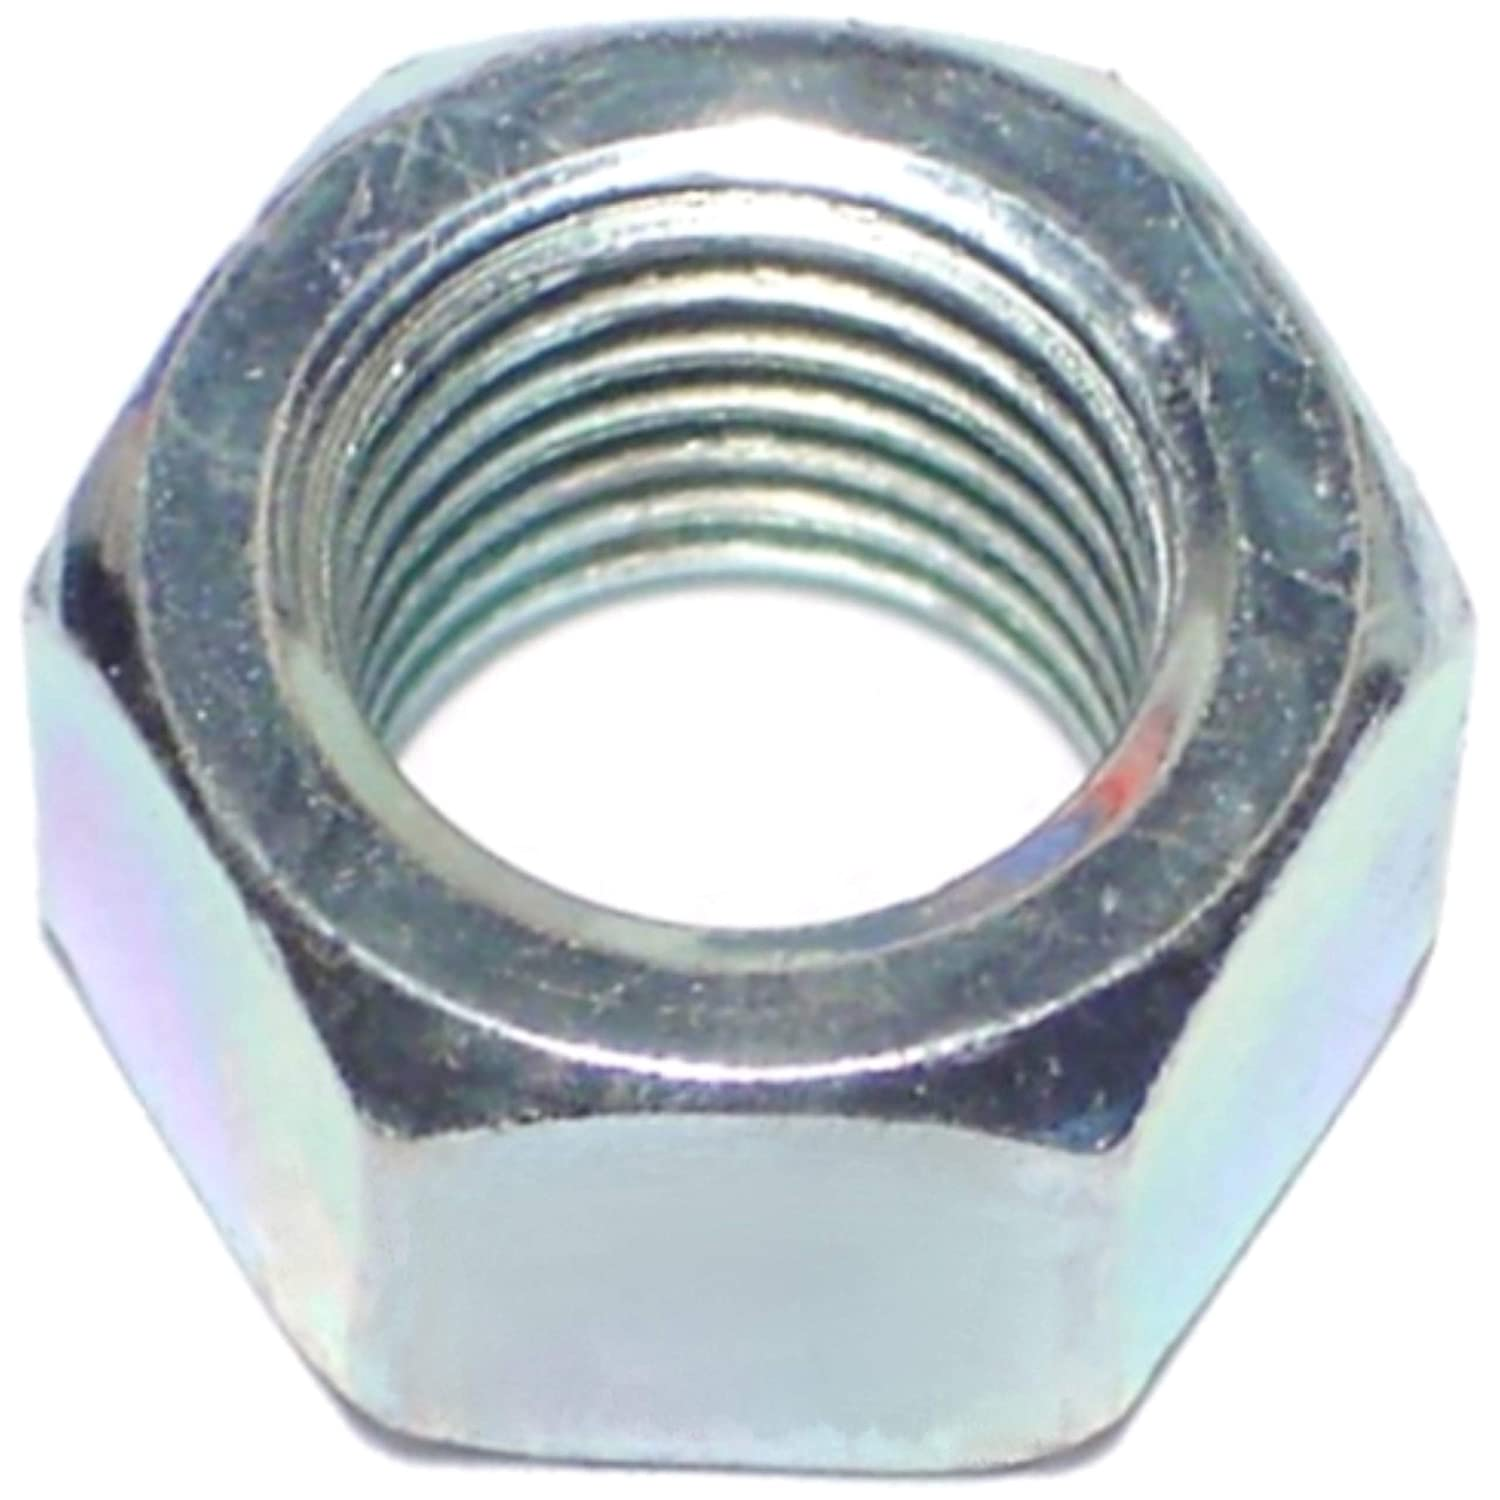 Hard-to-Find Fastener 014973242183 Fine Finished Hex Nuts 3//4-16 Piece-3